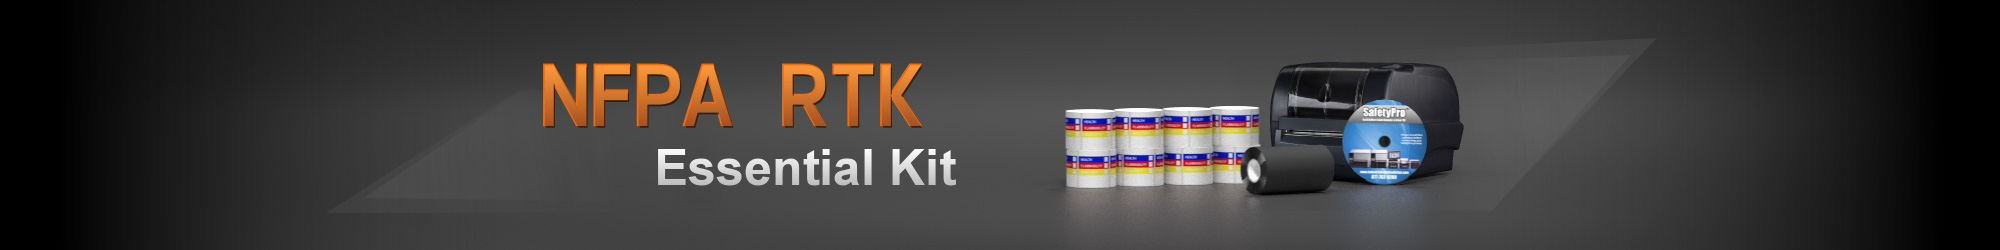 NFPA RTK Essential Kit